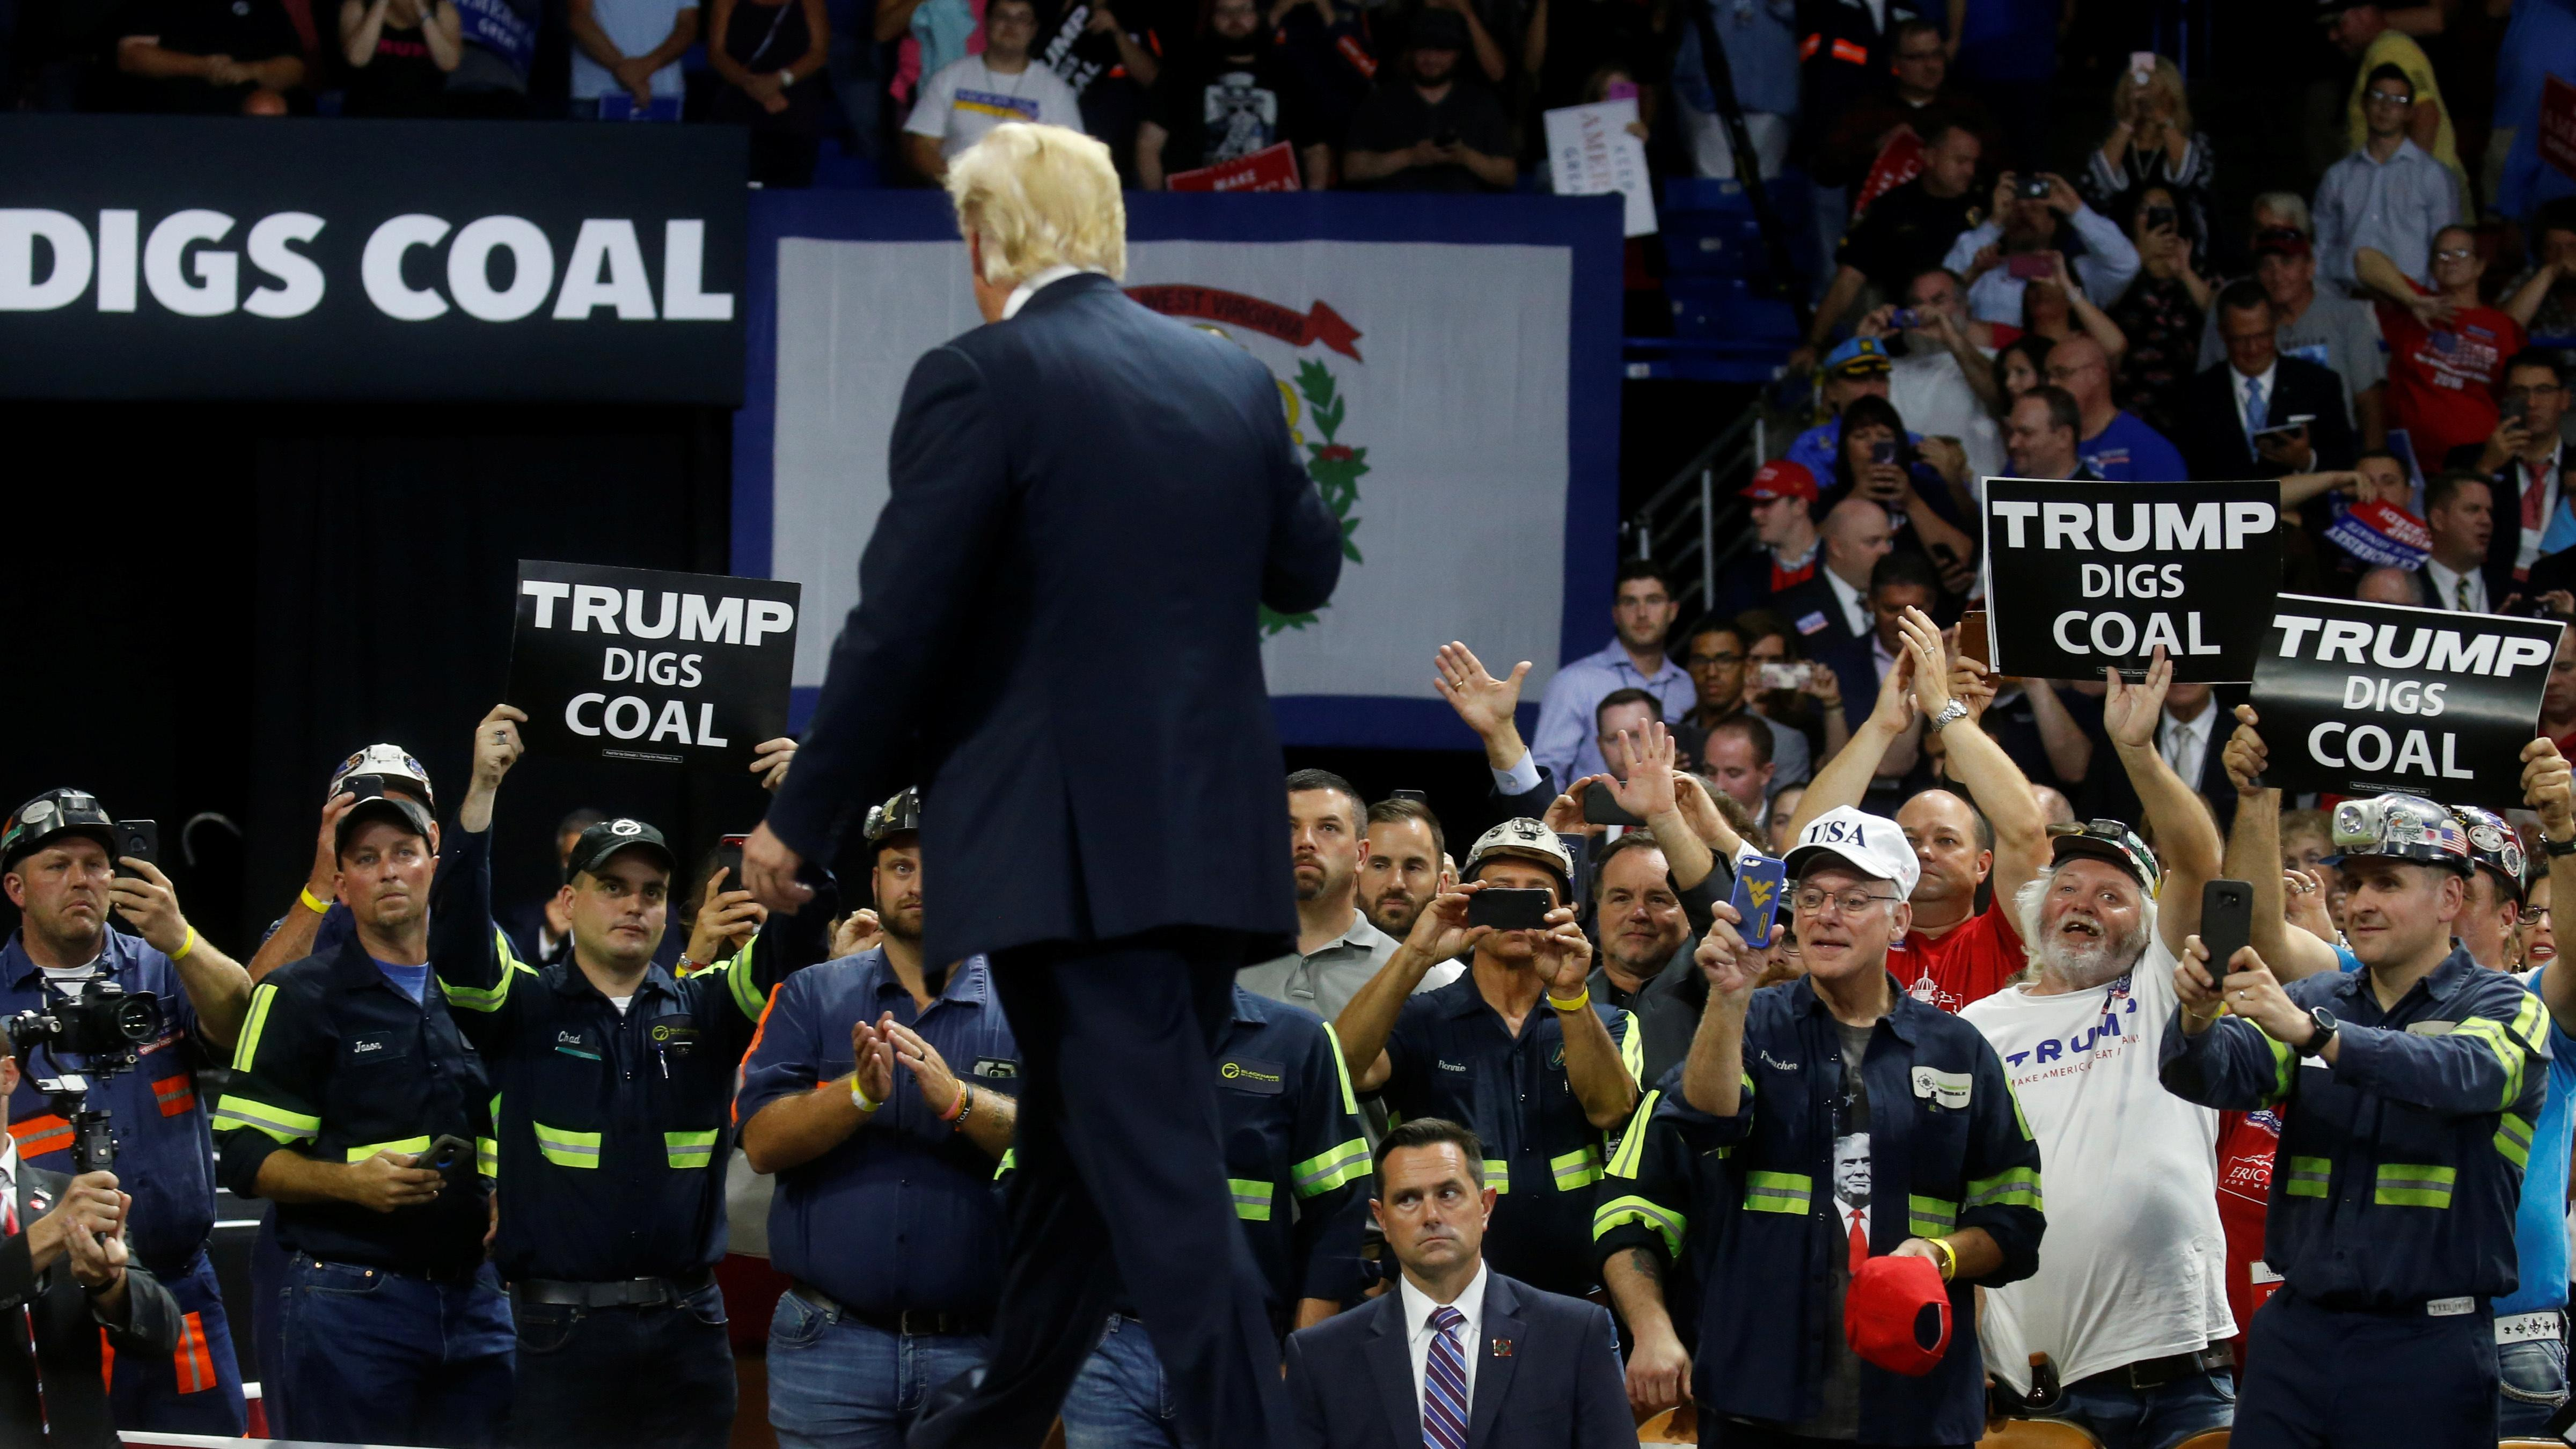 At U.N. climate talks, Trump team plans sideshow on coal